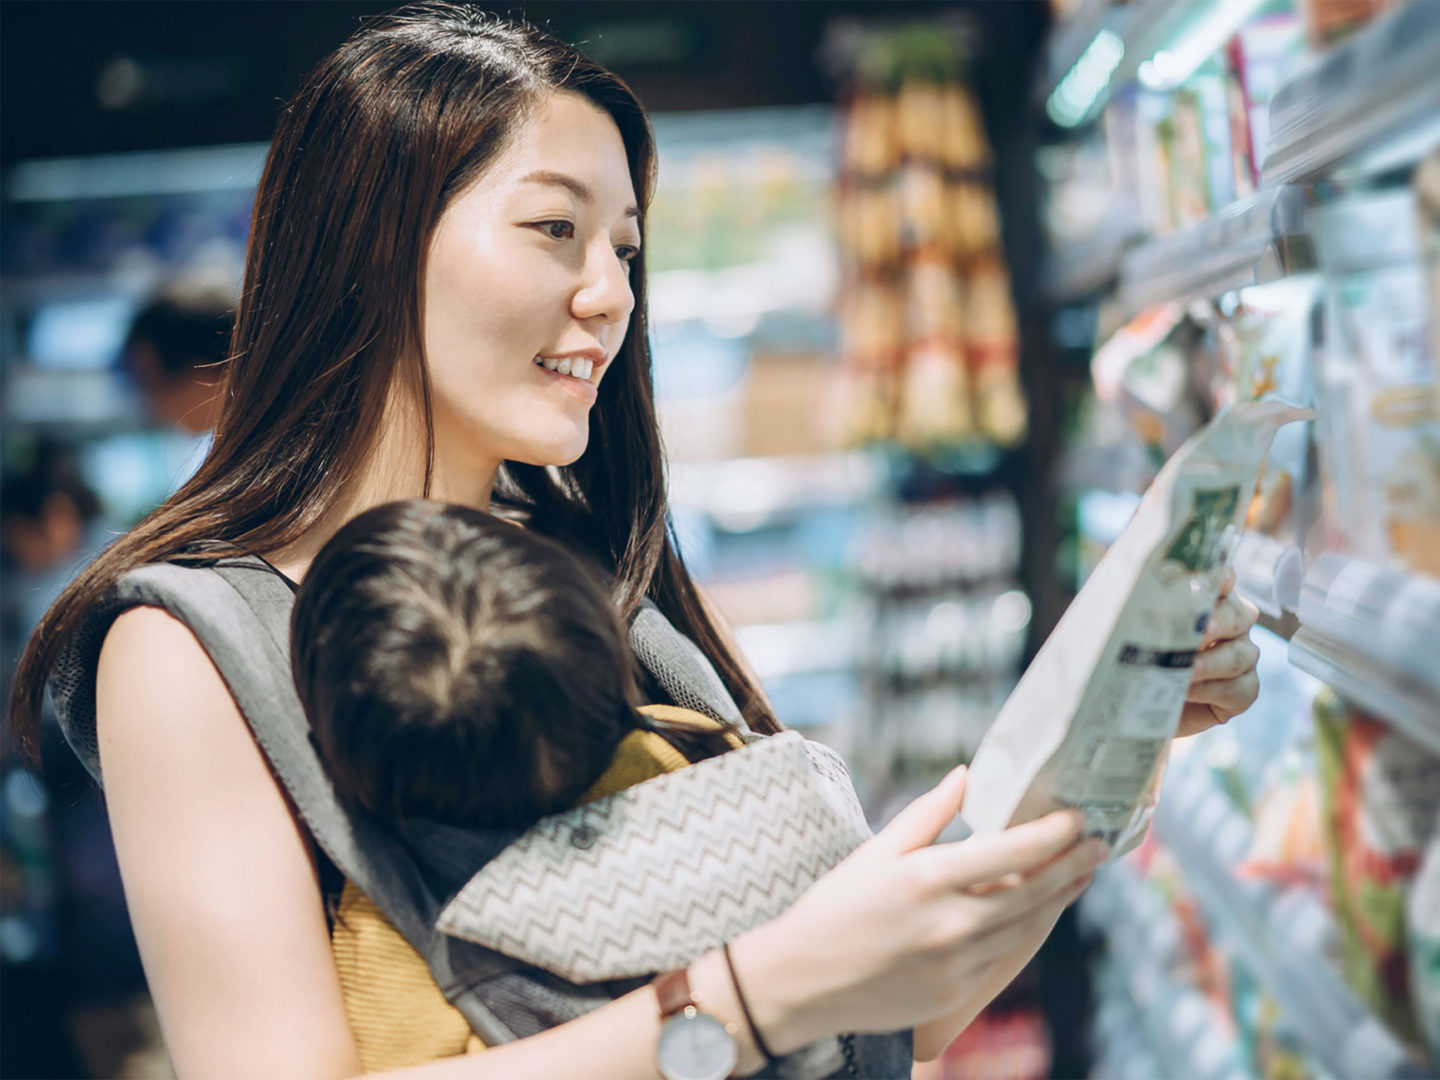 Asian mom with baby in grocery store looking at food label